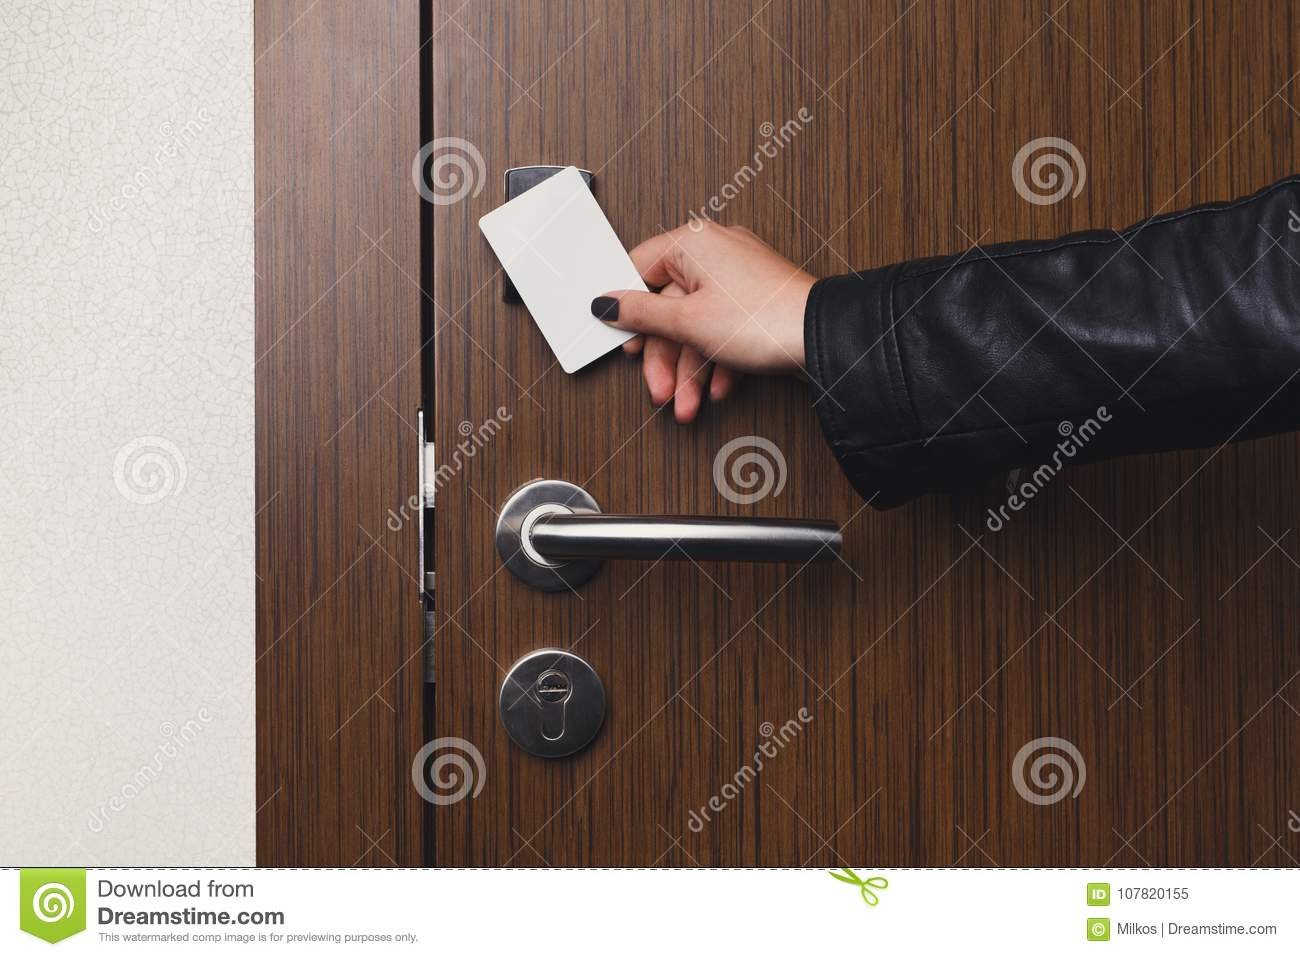 Hand Inserting Key Card In Electronic Lock Stock Image - Image of